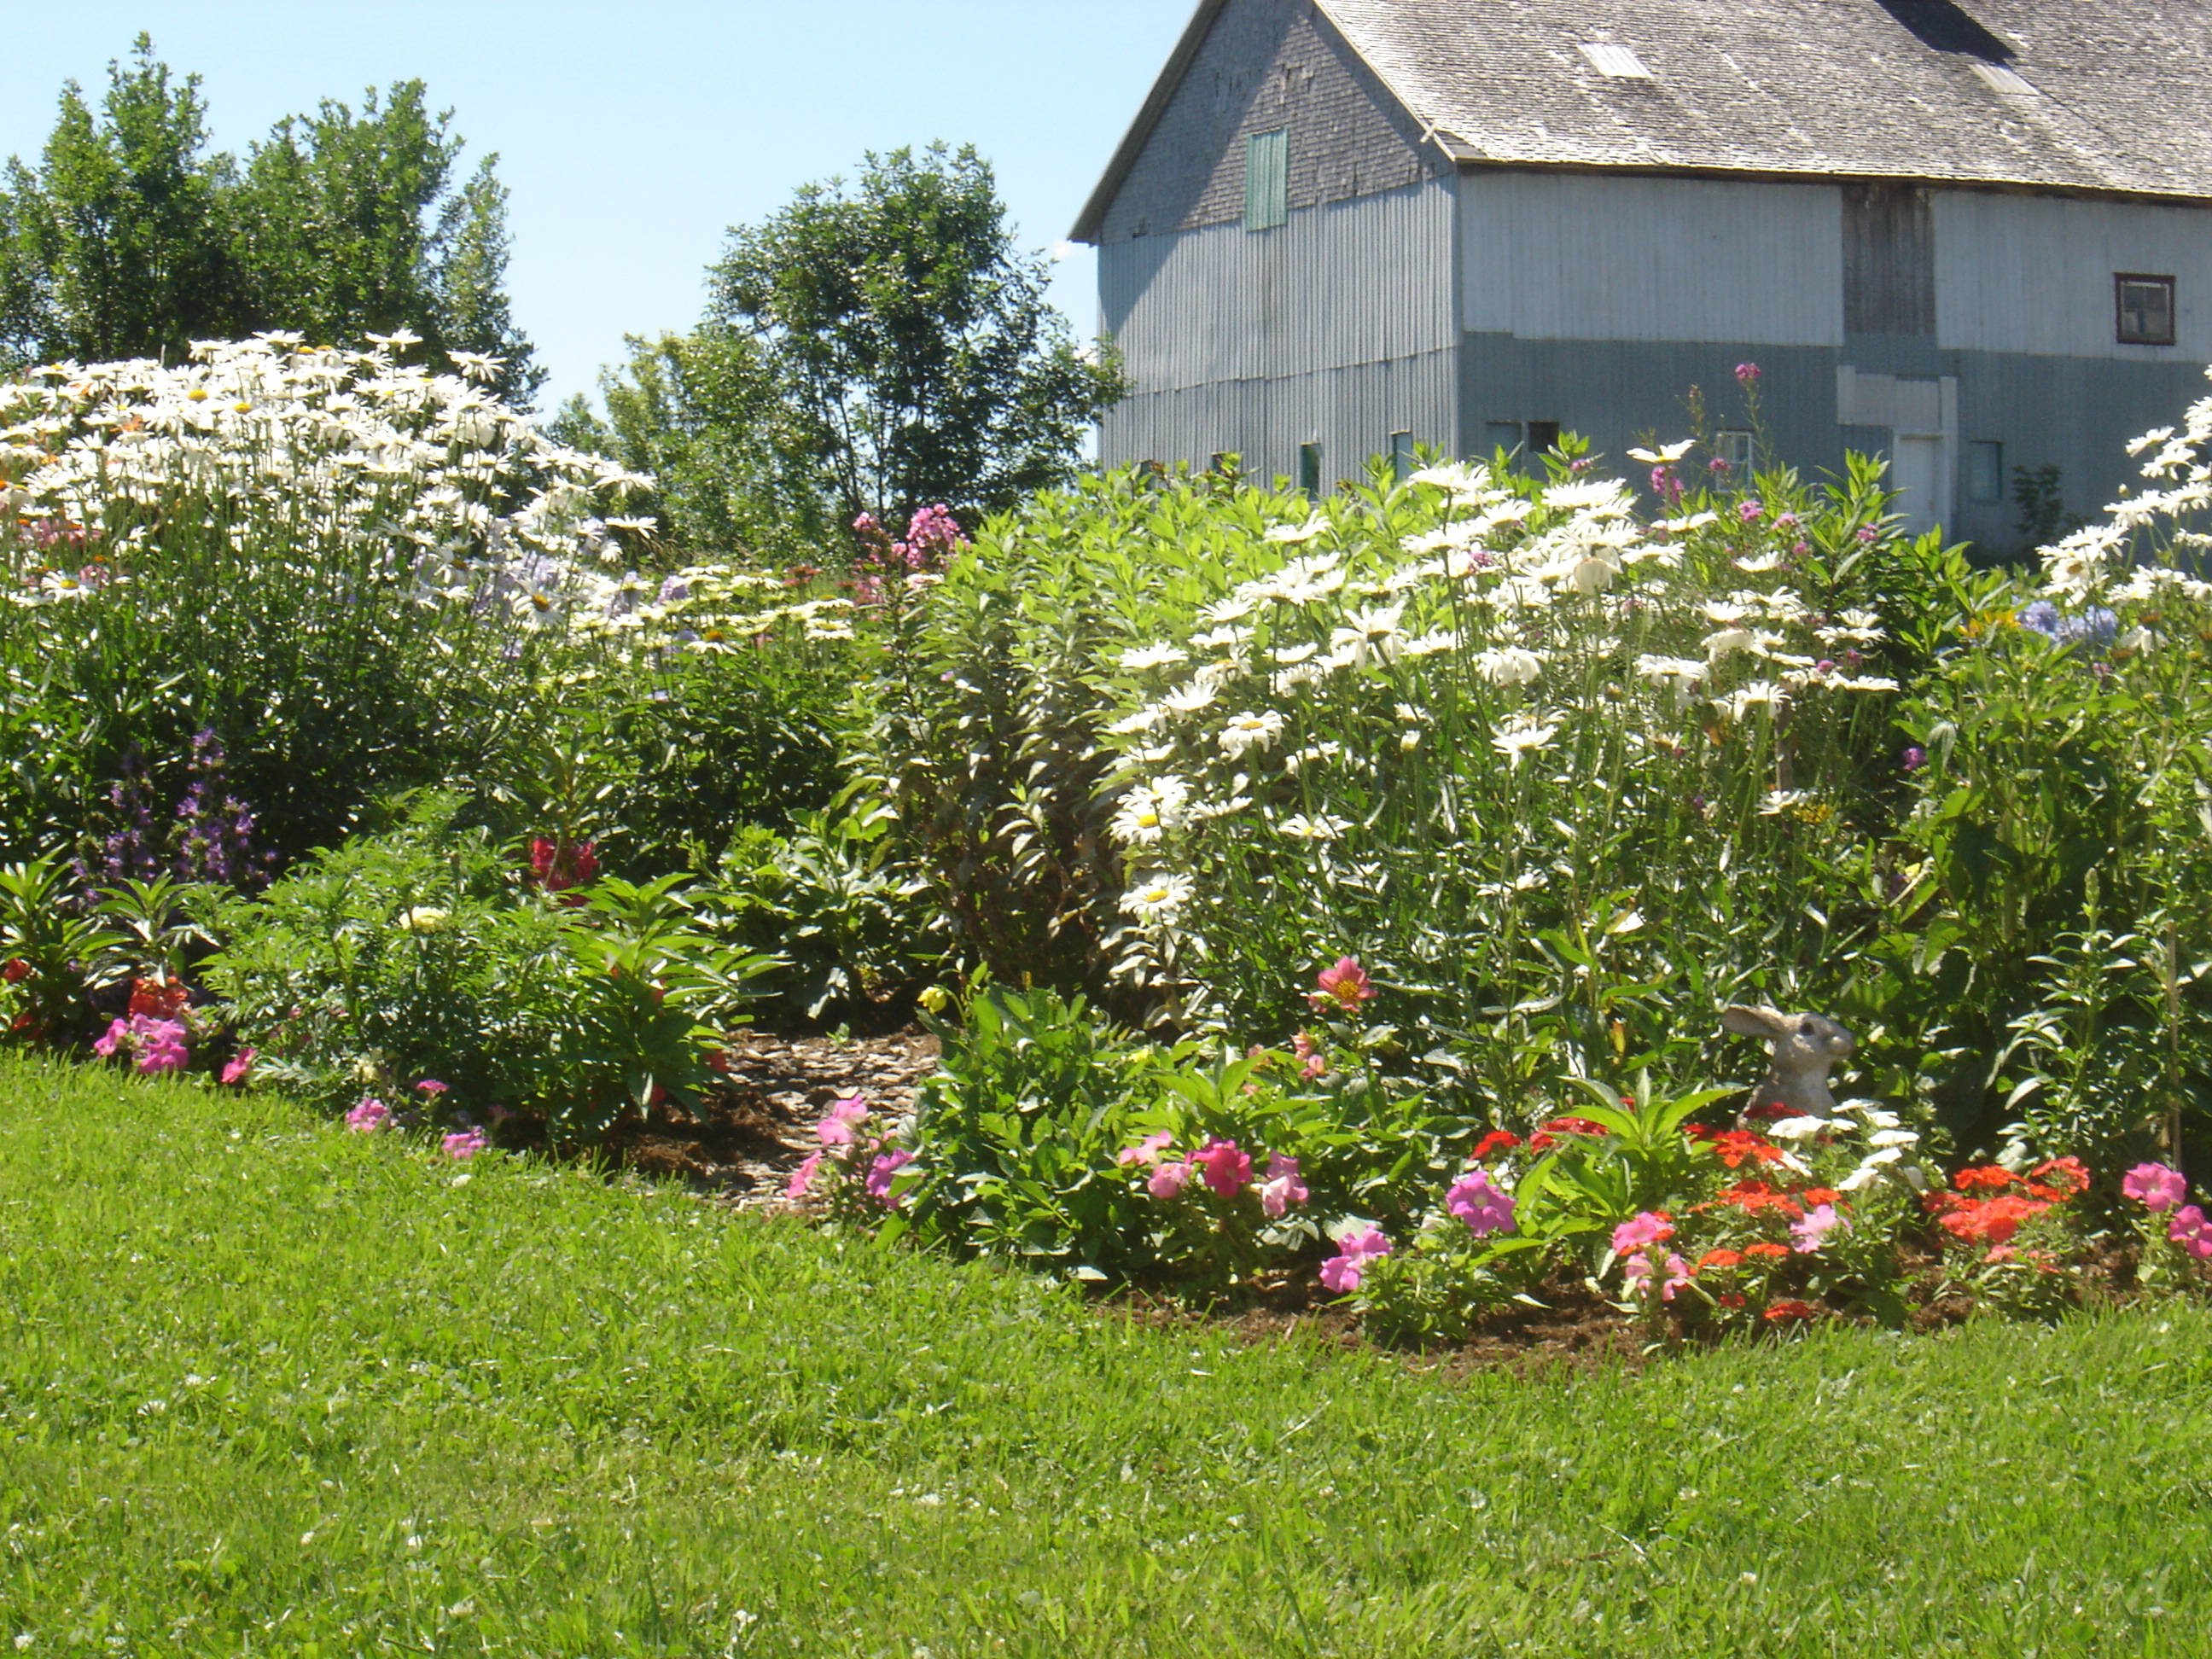 Our wonderful farmhouse in st antoine de tilly quebec for Farm house landscaping